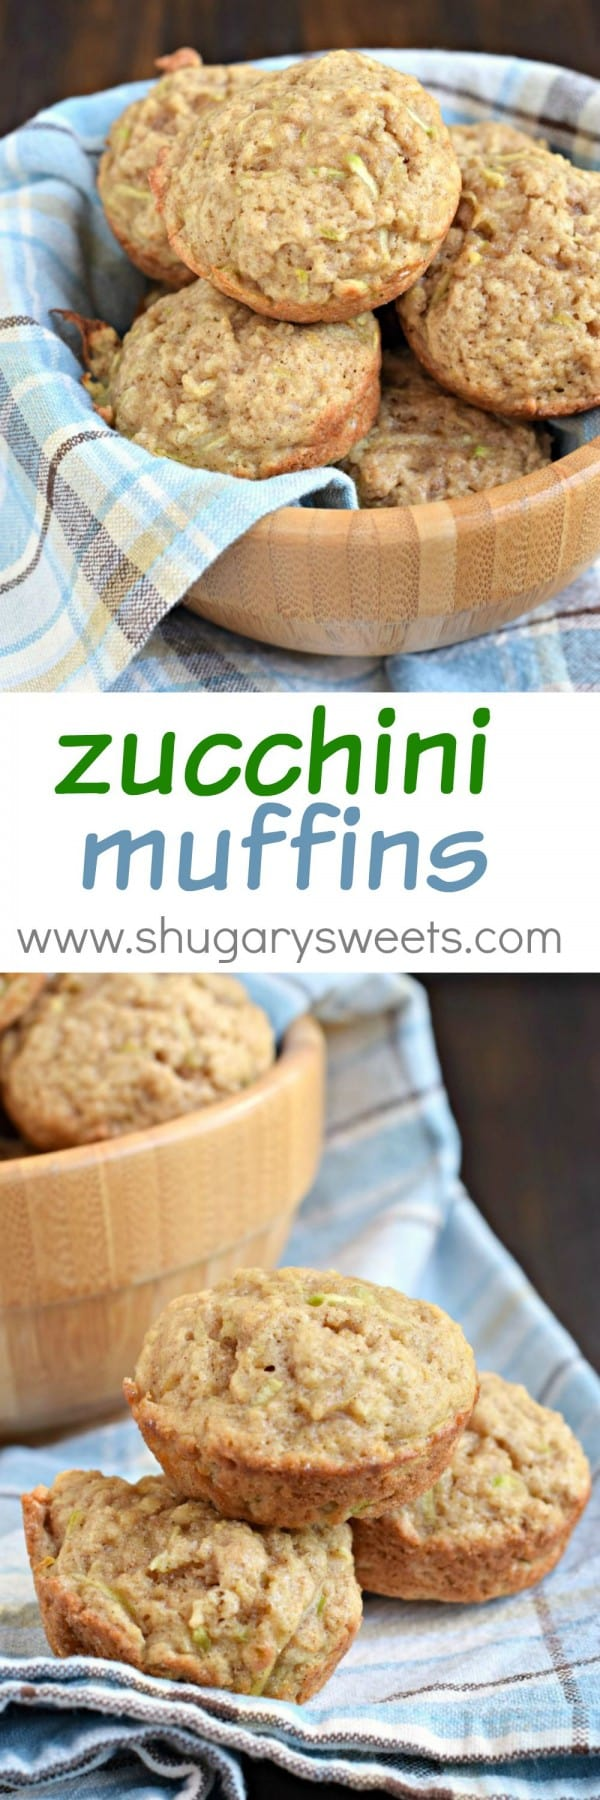 Zucchini Muffins: these easy muffins are a huge hit in our family. So much flavor packed into every bite!